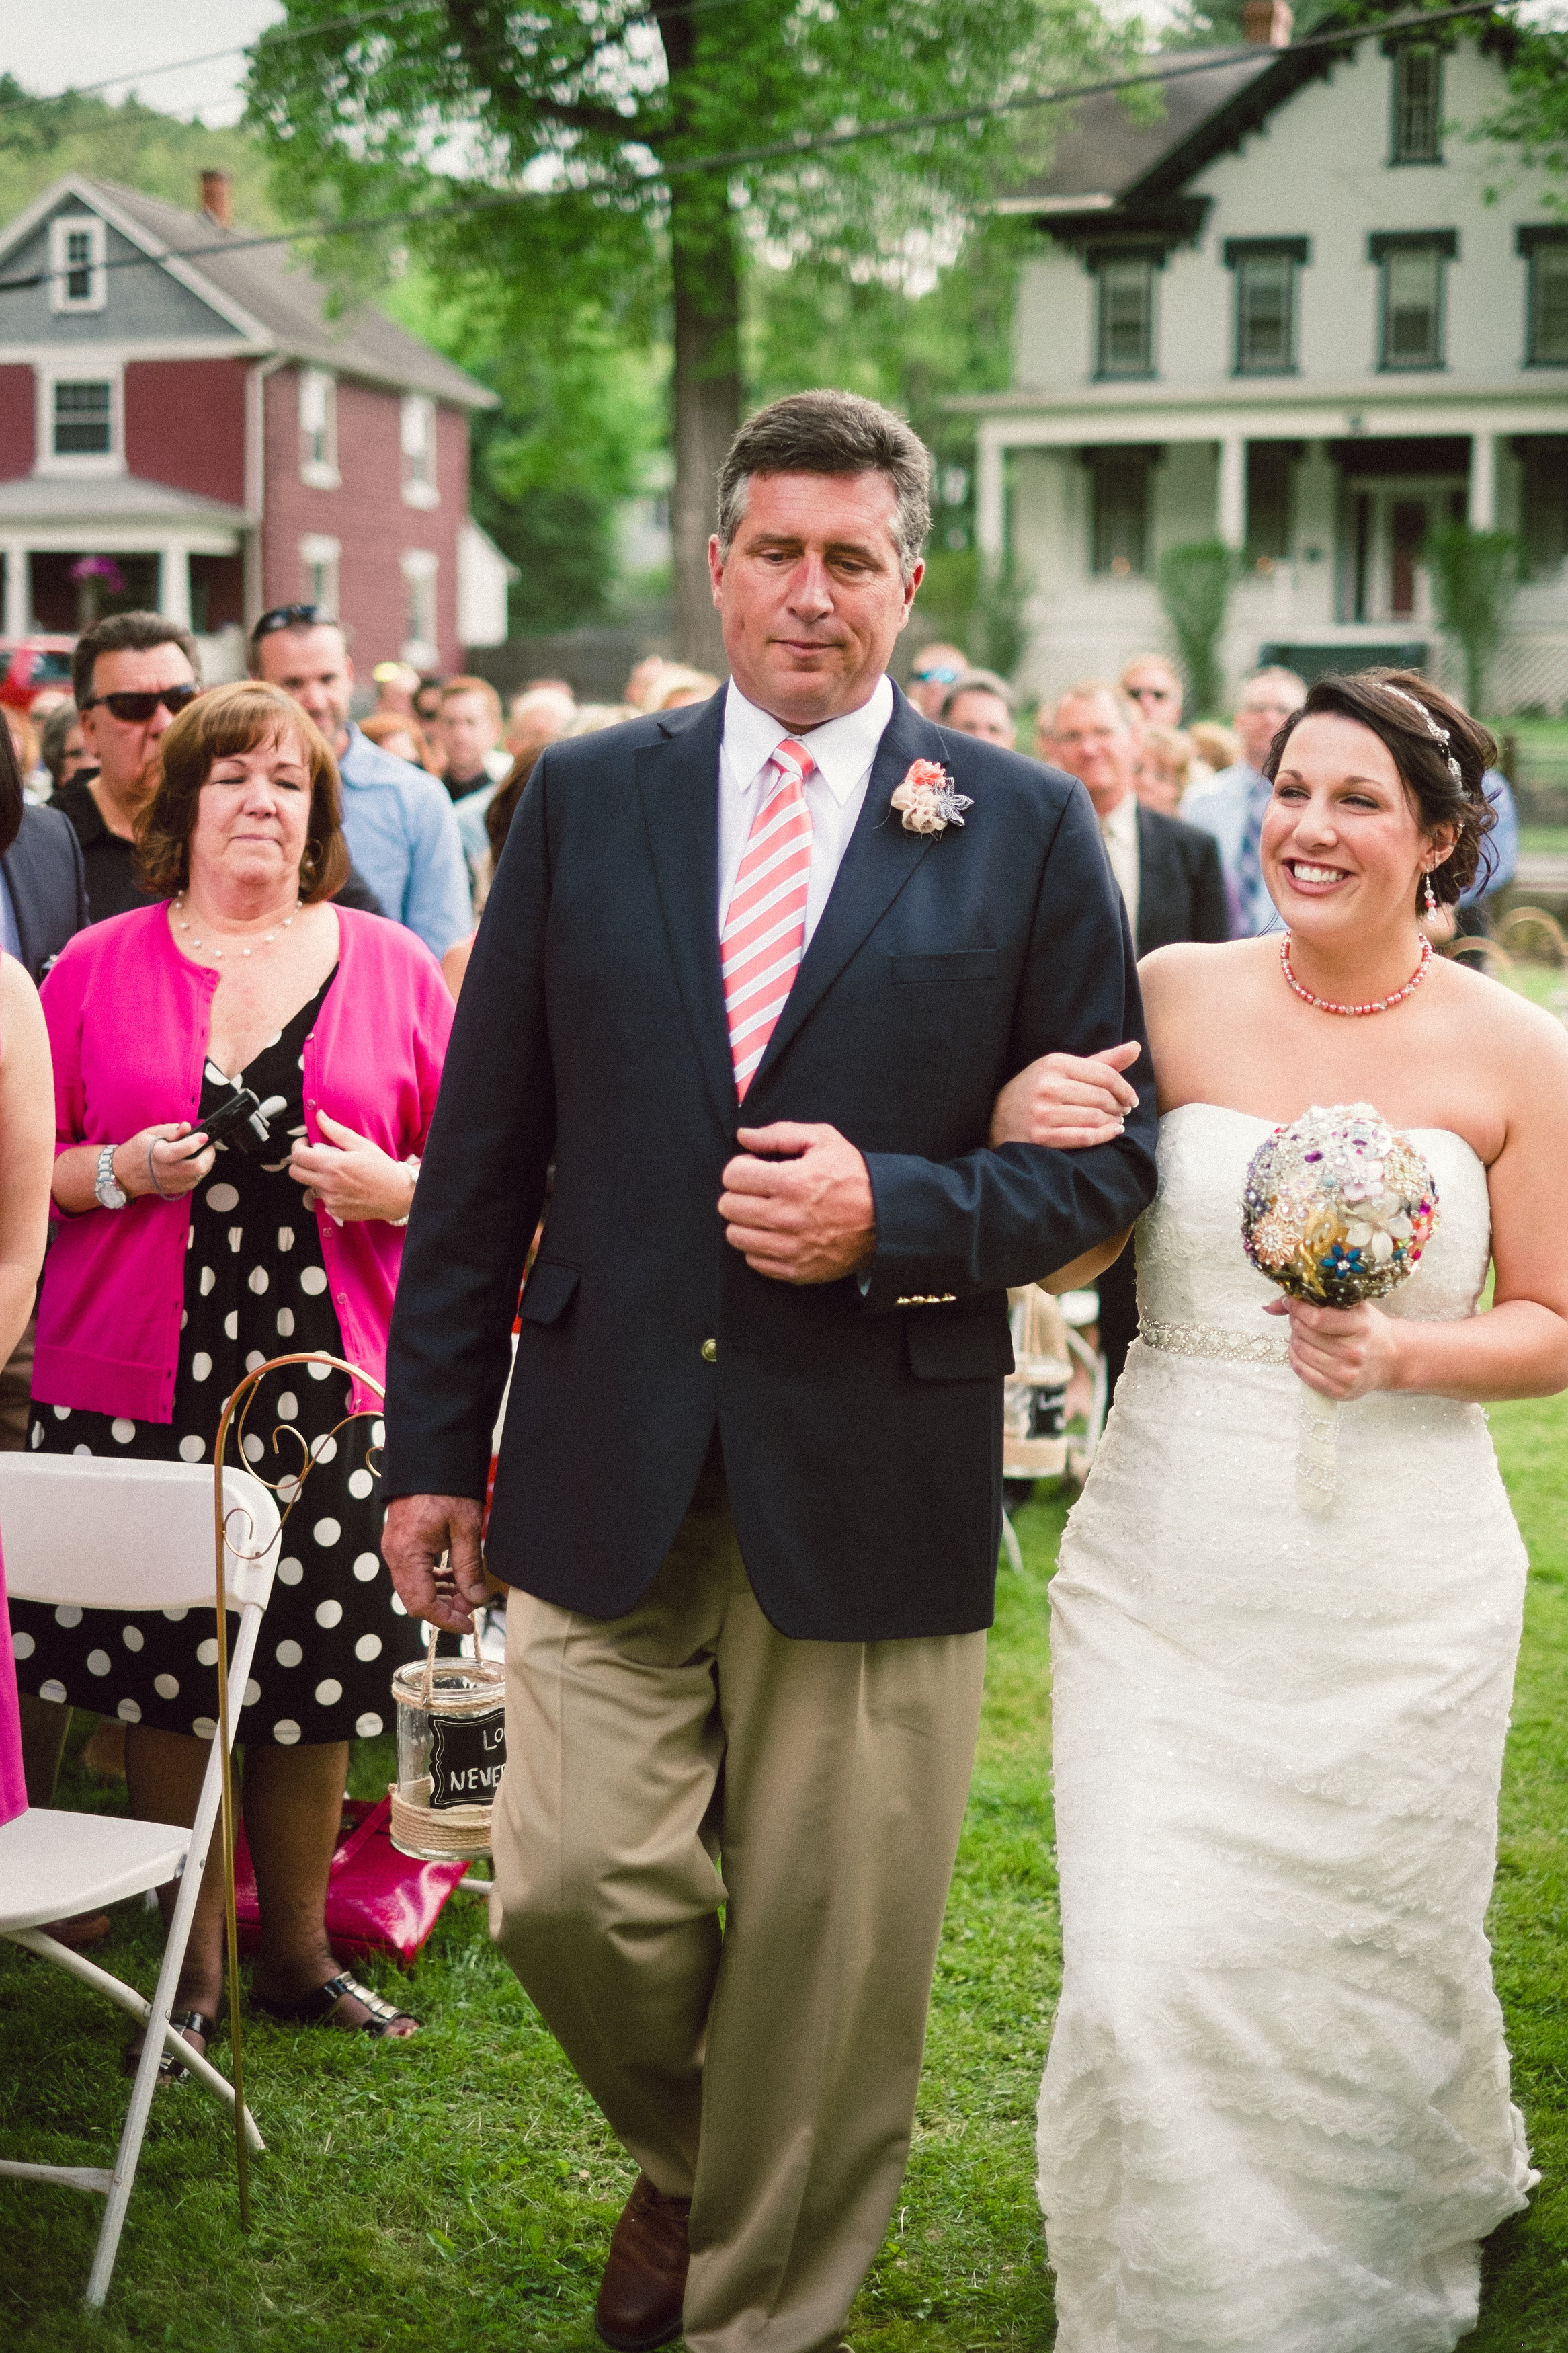 PennsylvaniaWeddingPhotographer-293.jpg